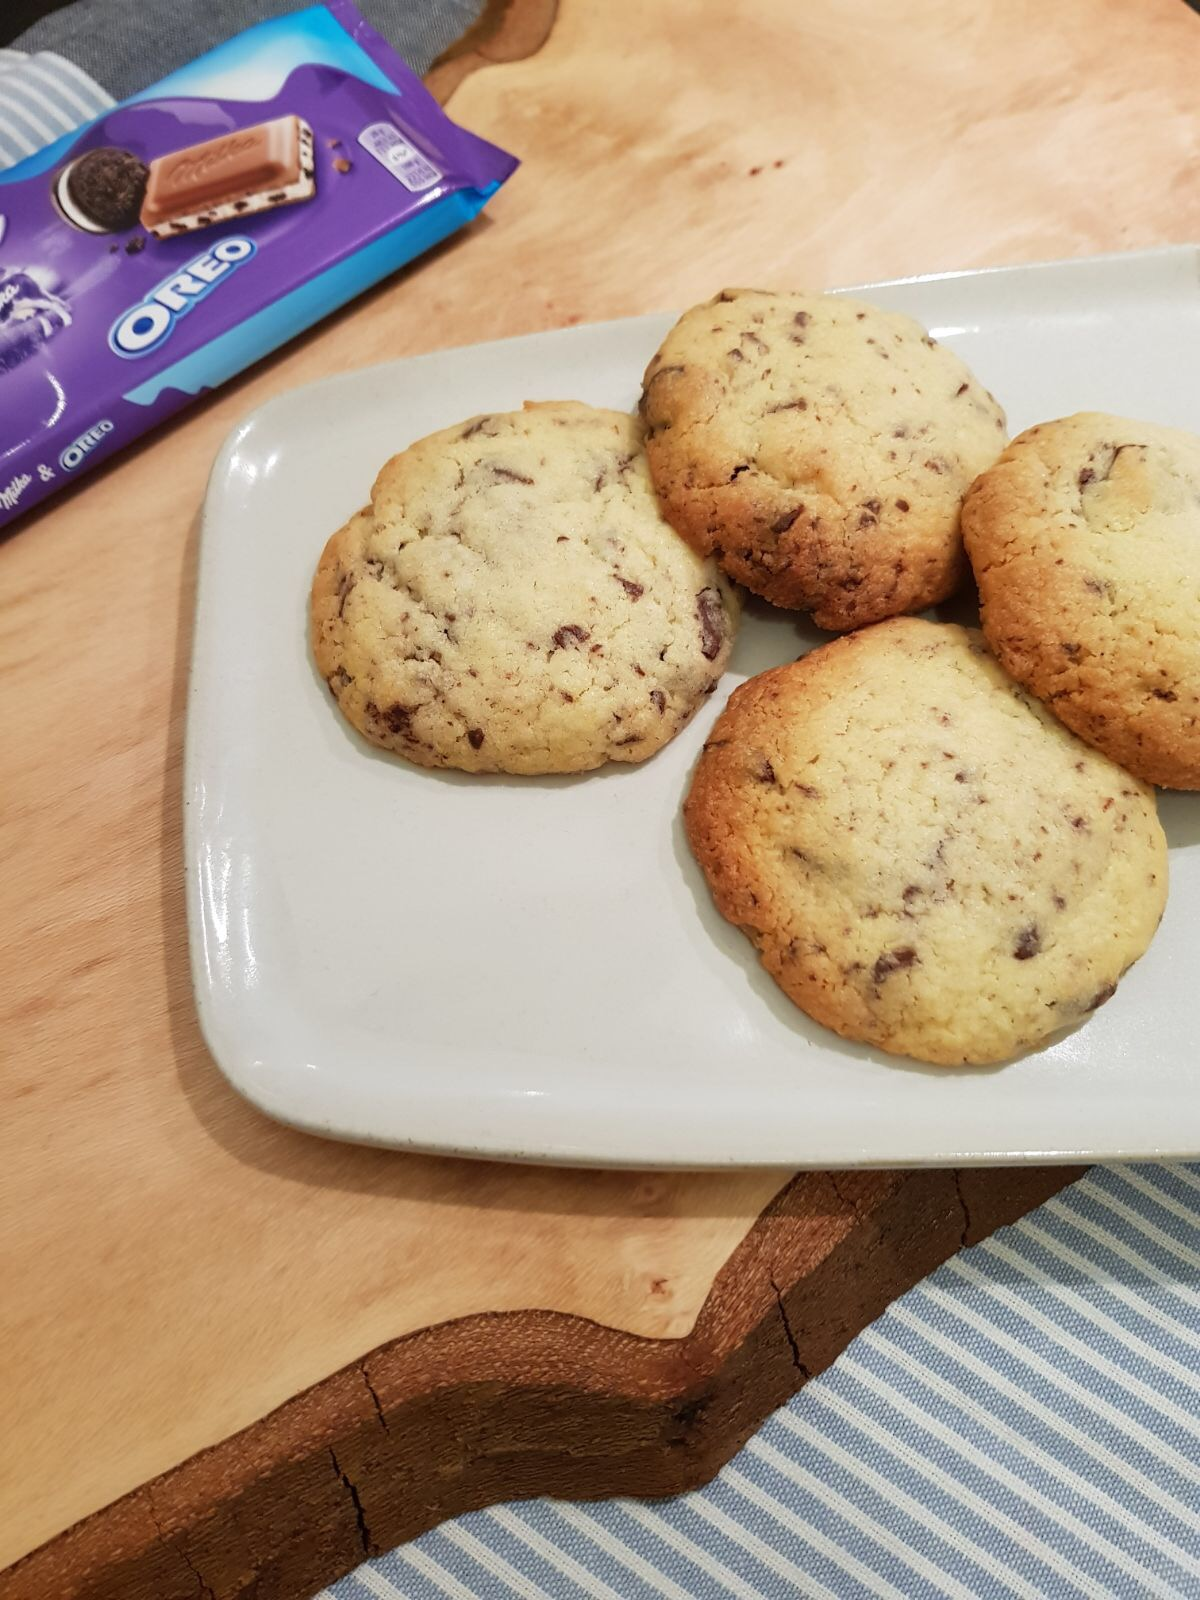 Milka Oreo Chocolate Chip Cookies